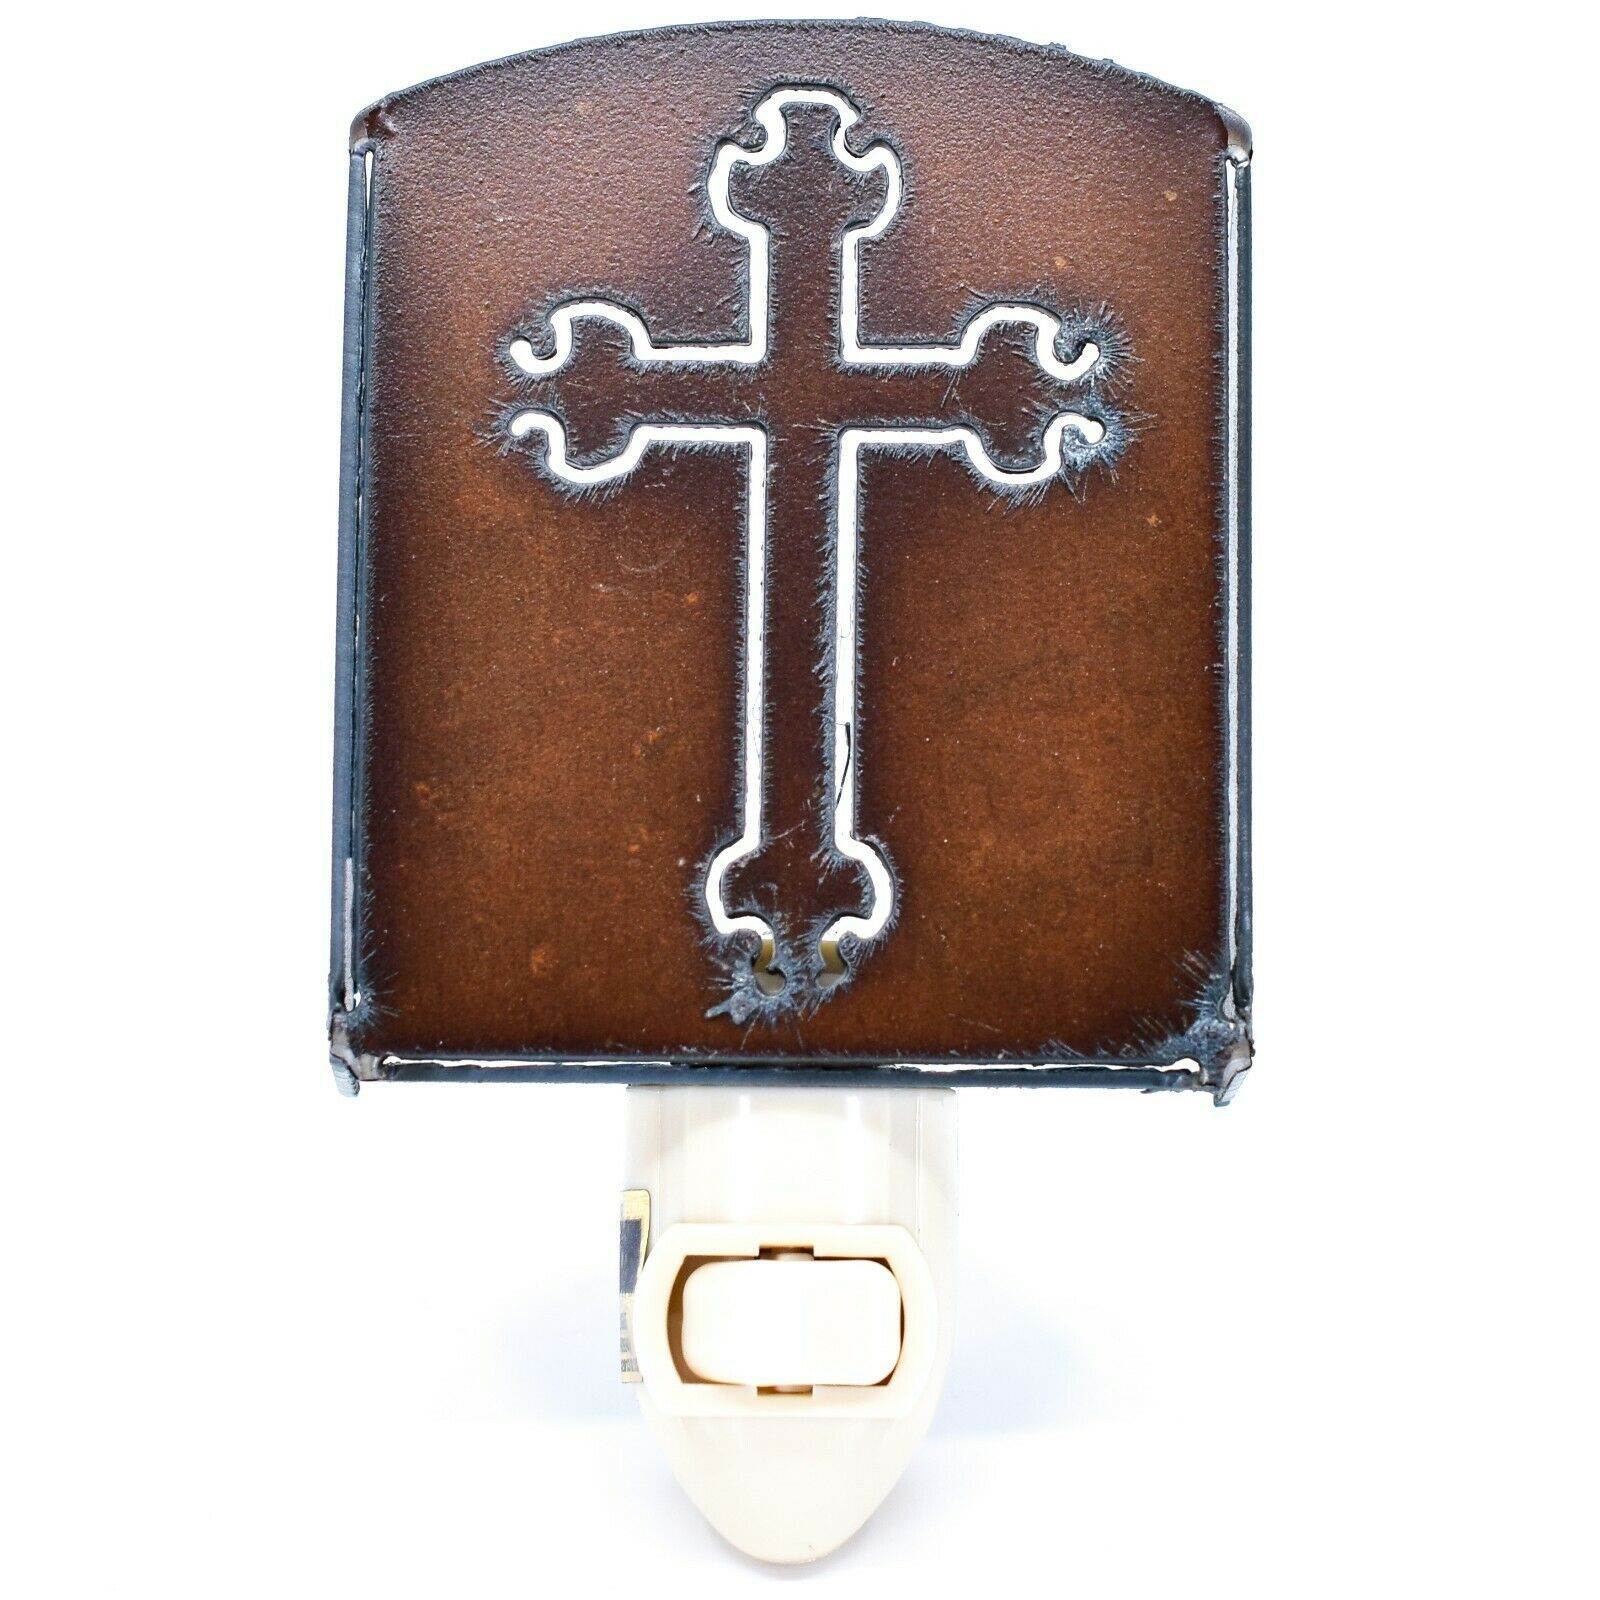 Country Western Rusted Patina Iron Metal Cutout Religious Cross Nightlight Light